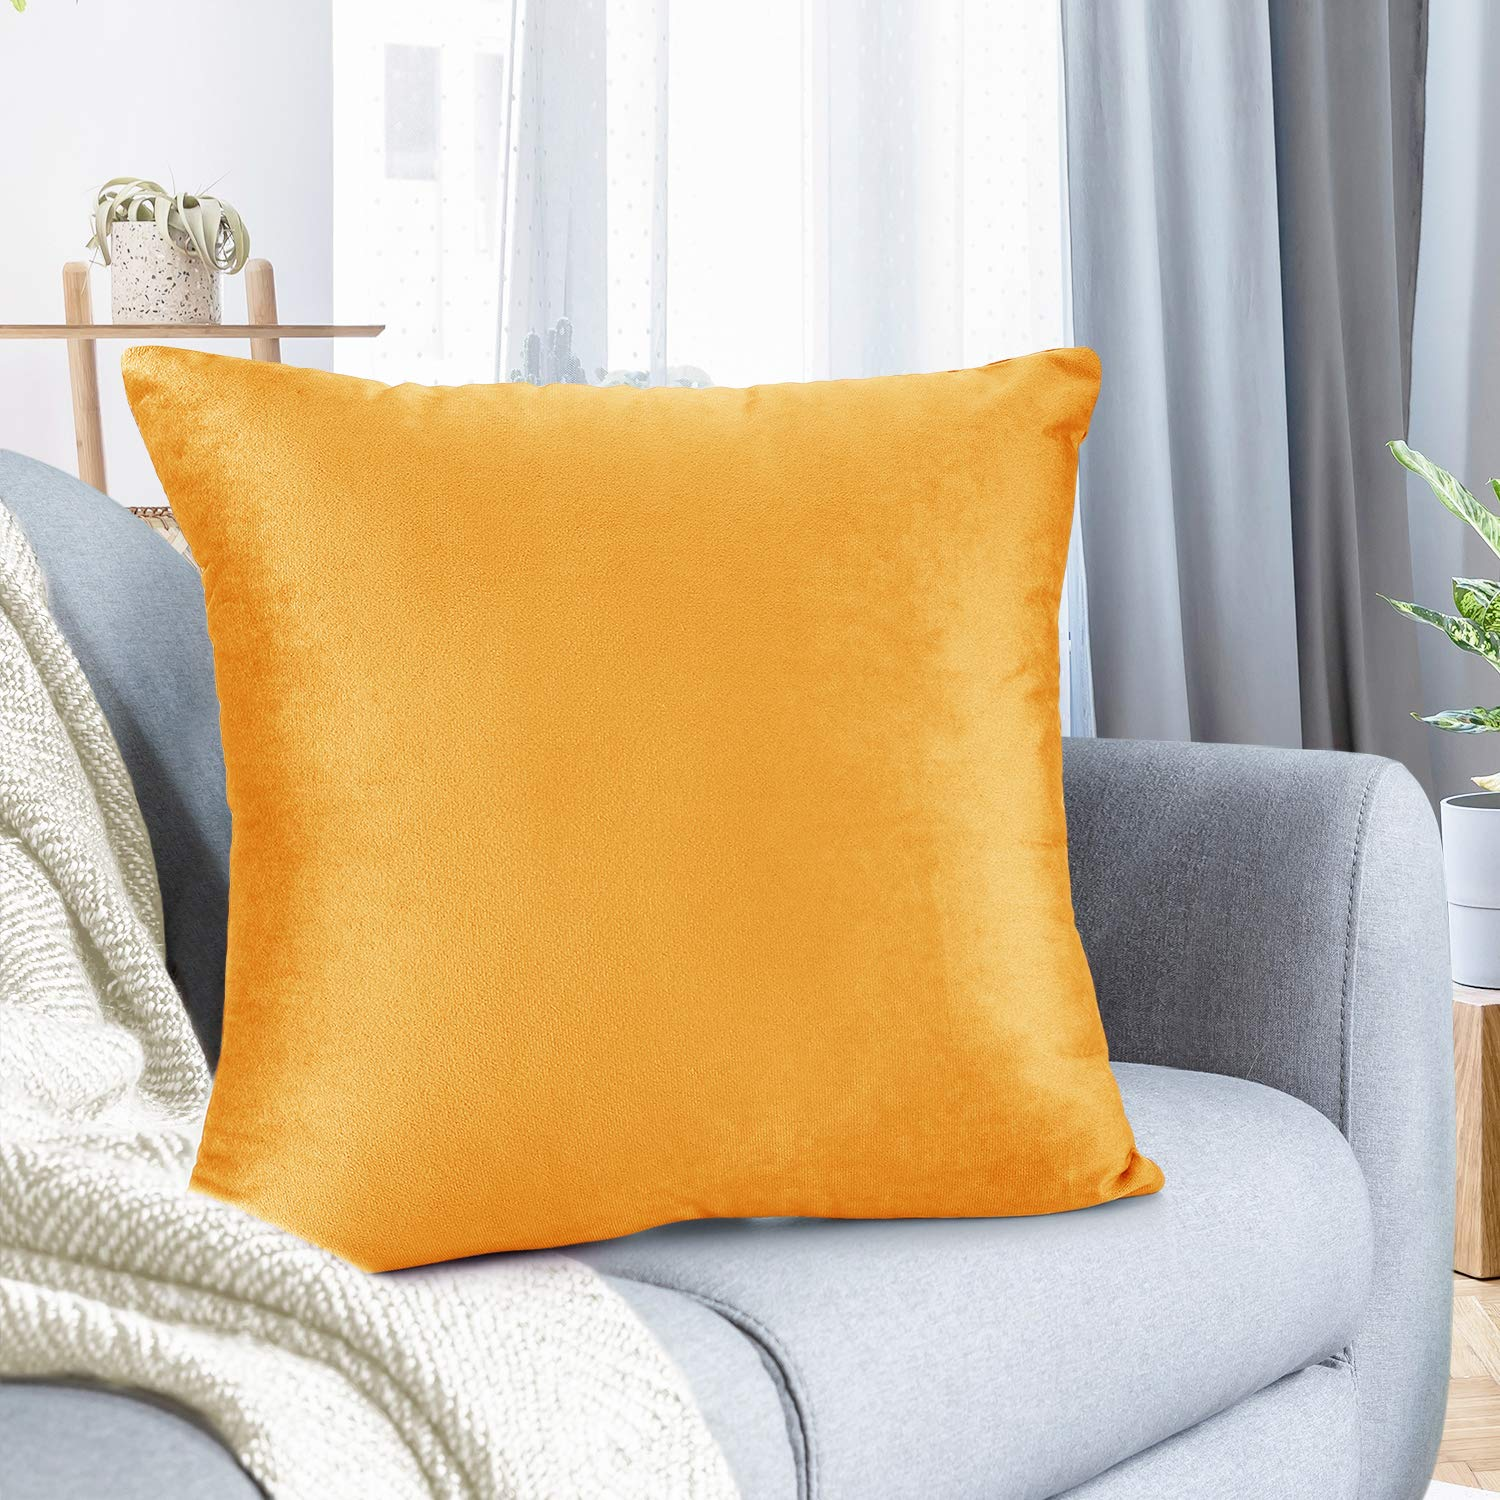 """Nestl Bedding Throw Pillow Cover 20"""" x 20"""" Soft Square Decorative Throw Pillow Covers Cozy Velvet Cushion Case for Sofa Couch Bedroom - Orange"""